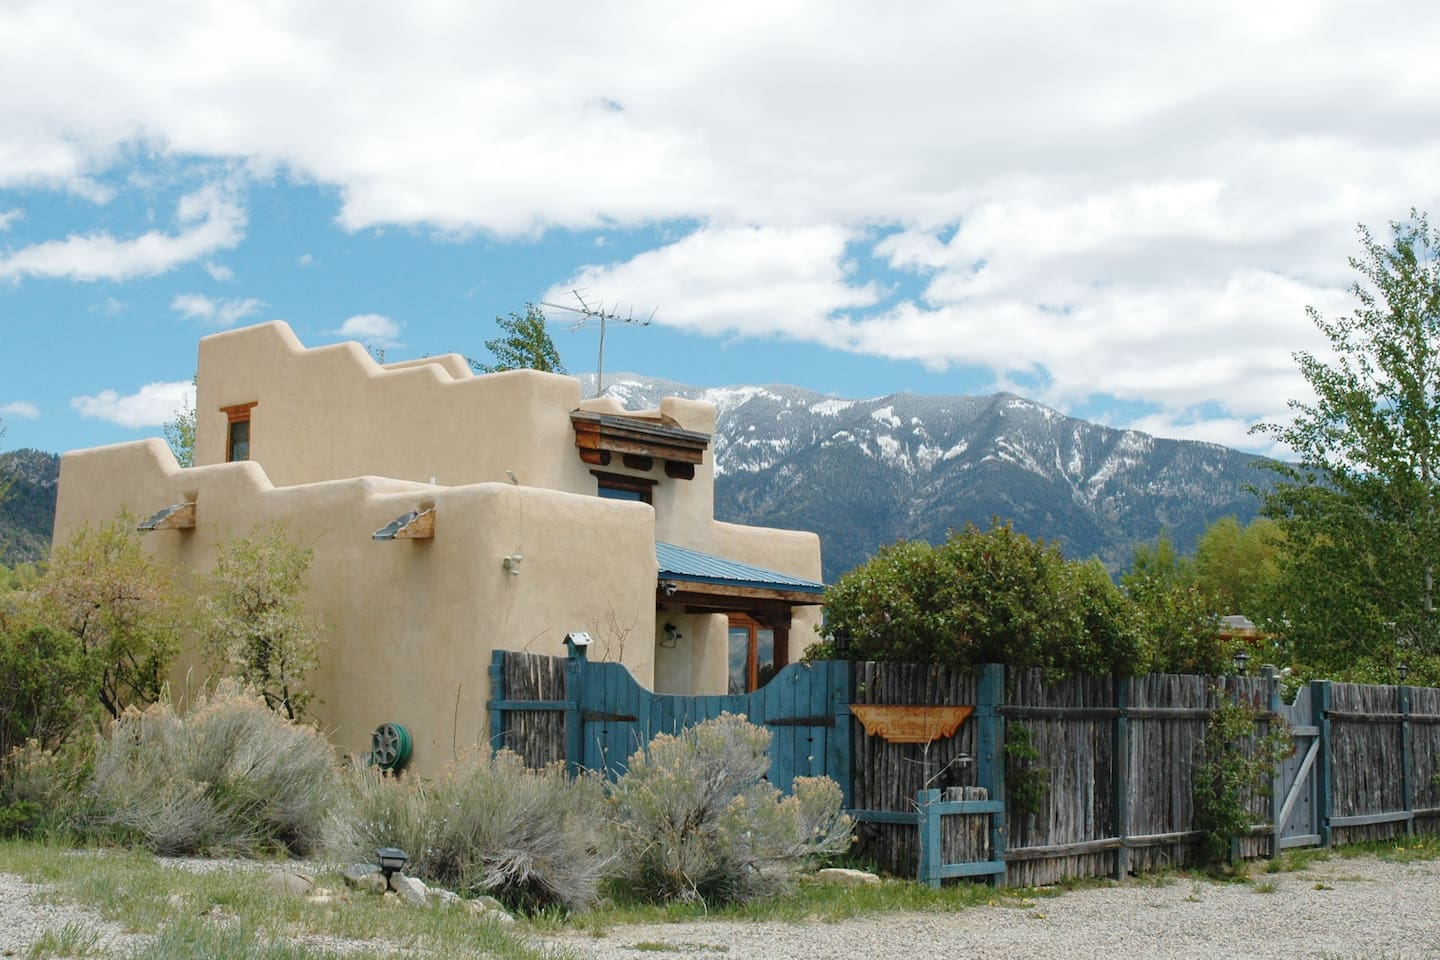 Charming little casita, blue sky and snowy mountains!